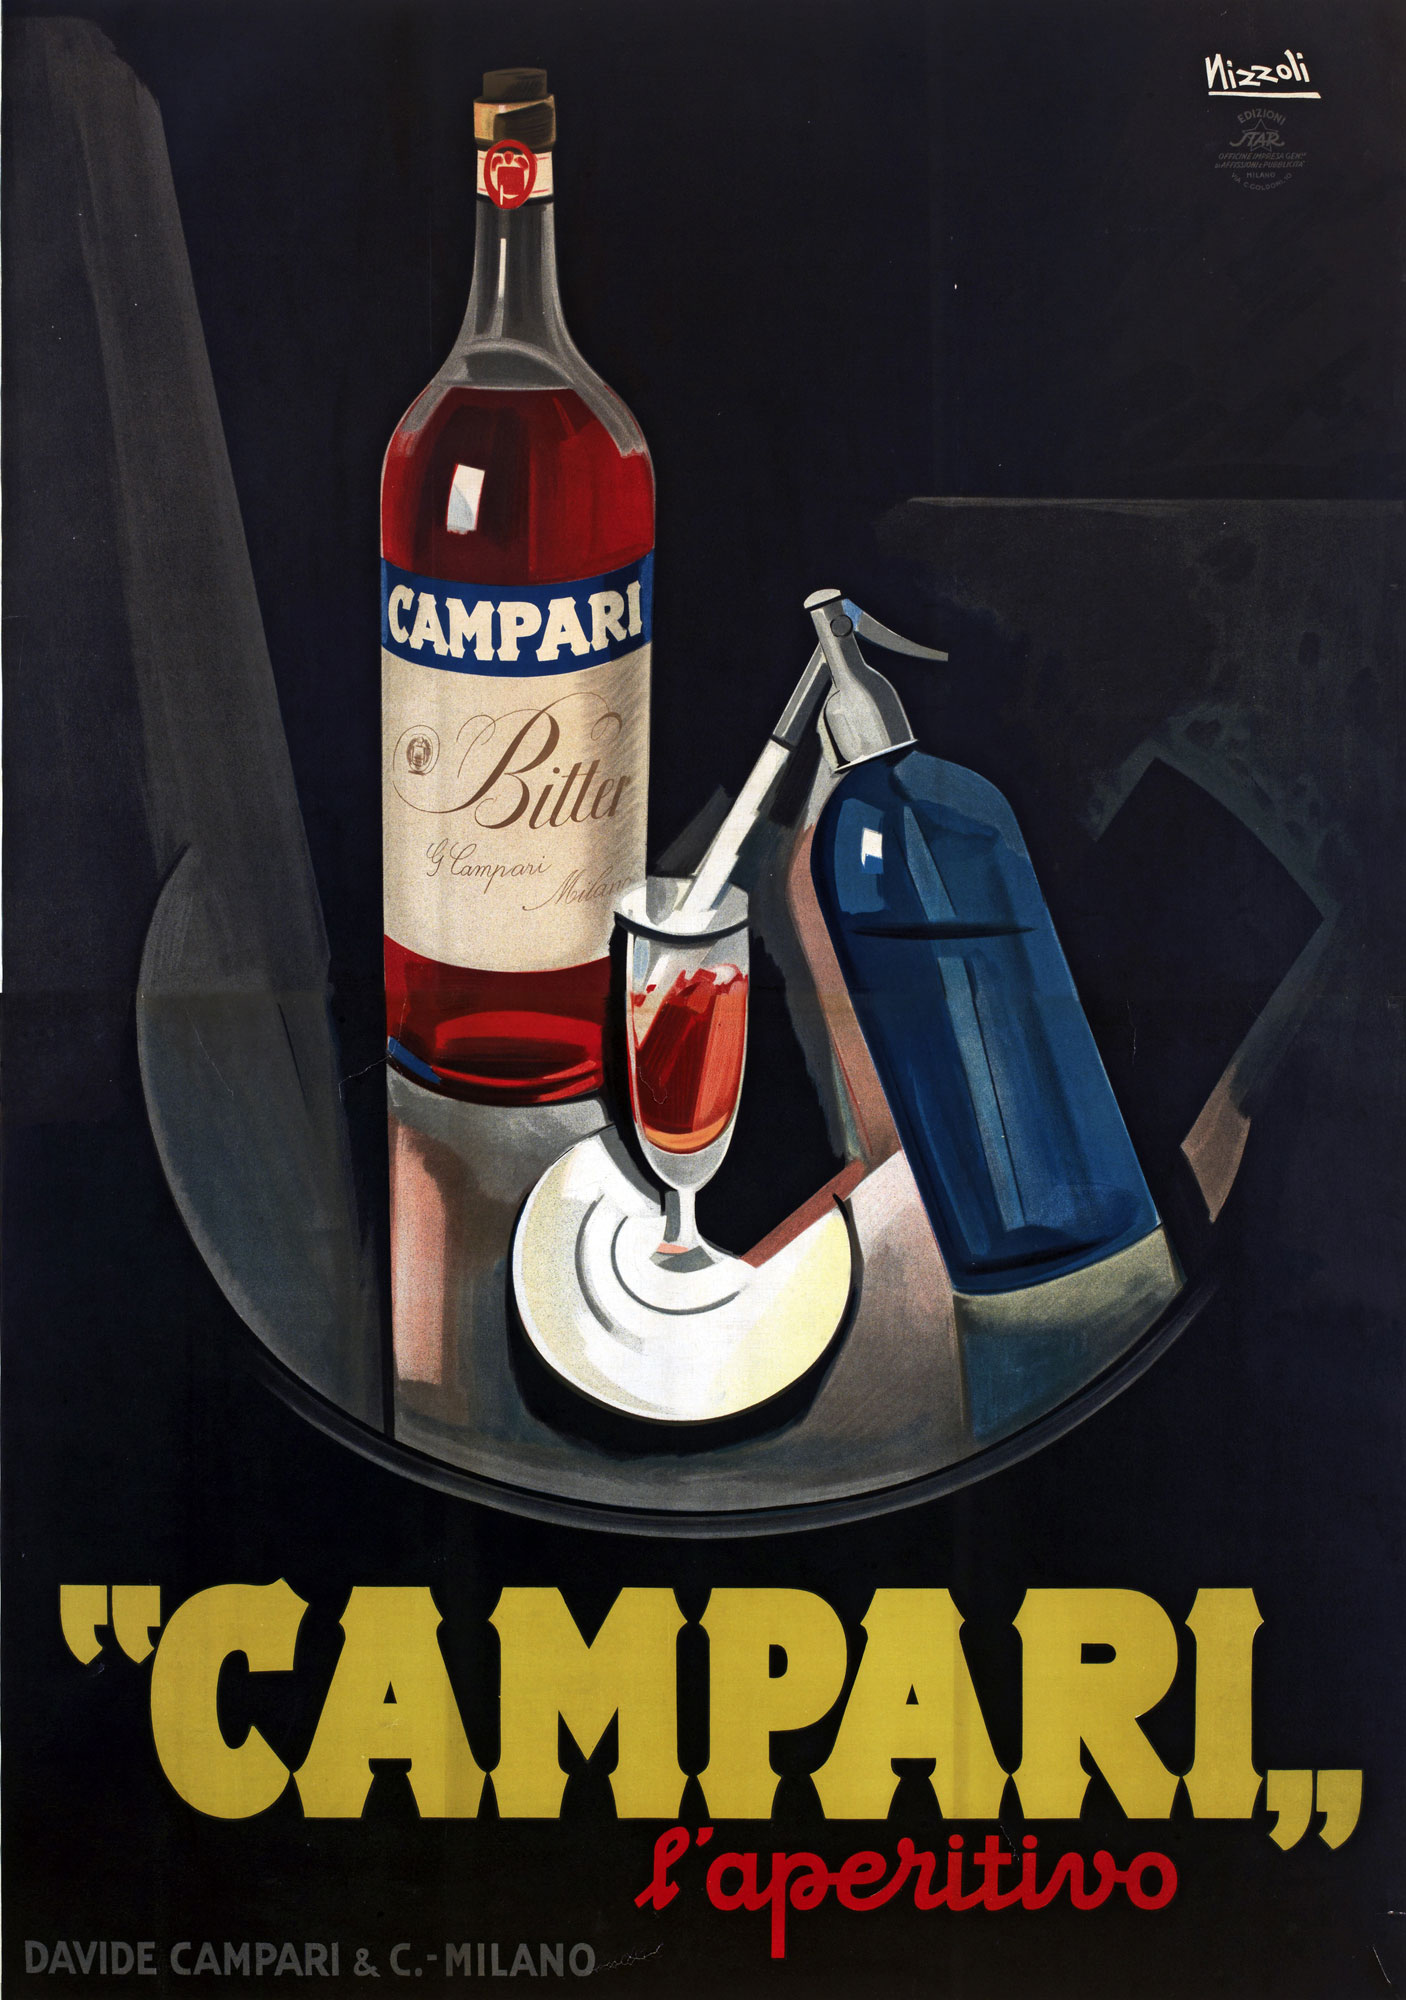 Illustrated advert for Campari showing bottle of red liquid on a table, with a tall glass full of the liquid and a soda siphon